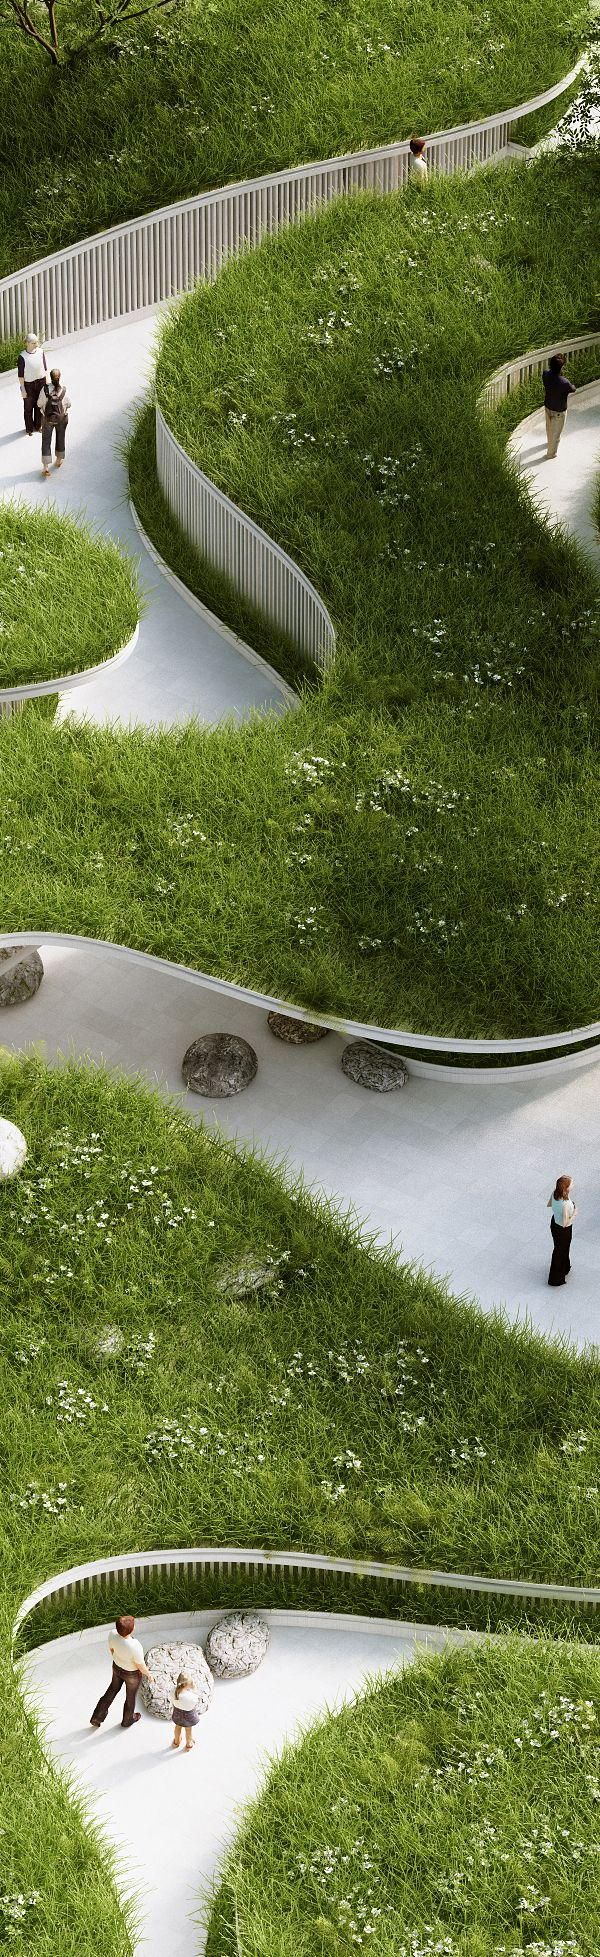 777 best landscape architecture images on pinterest for Green landscape design